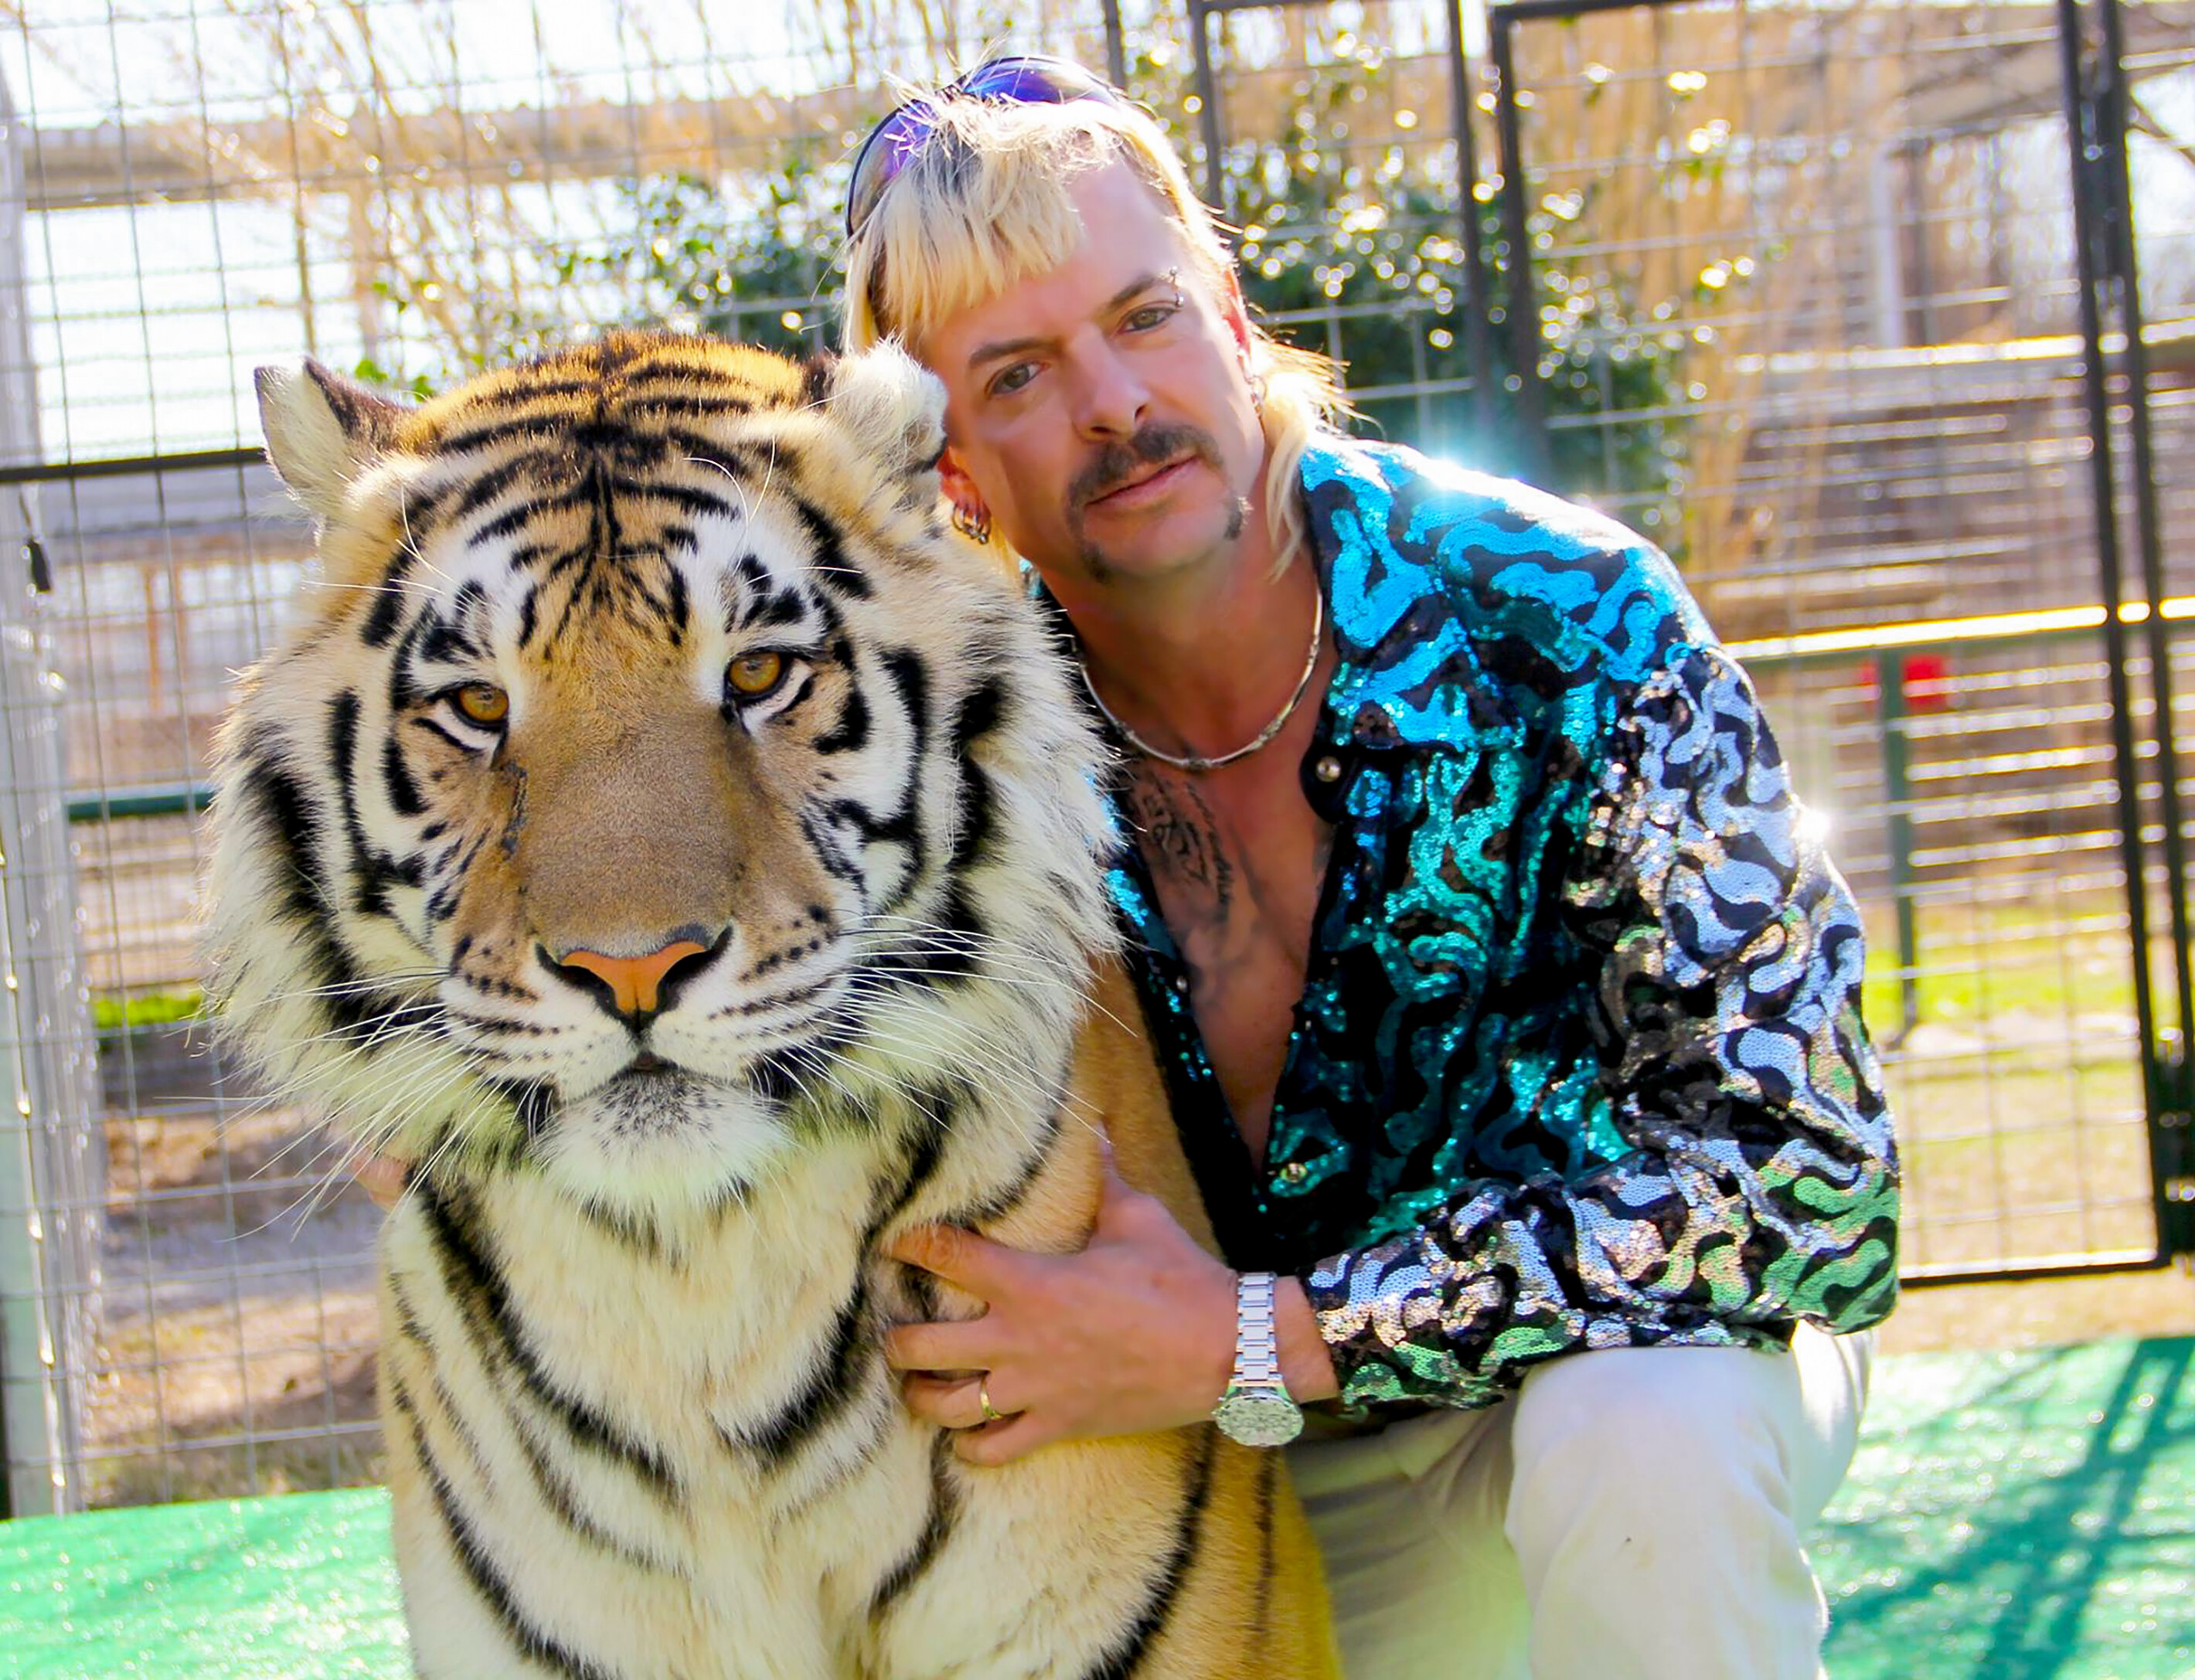 'Tiger King' Joe Exotic will be resentenced after a court order